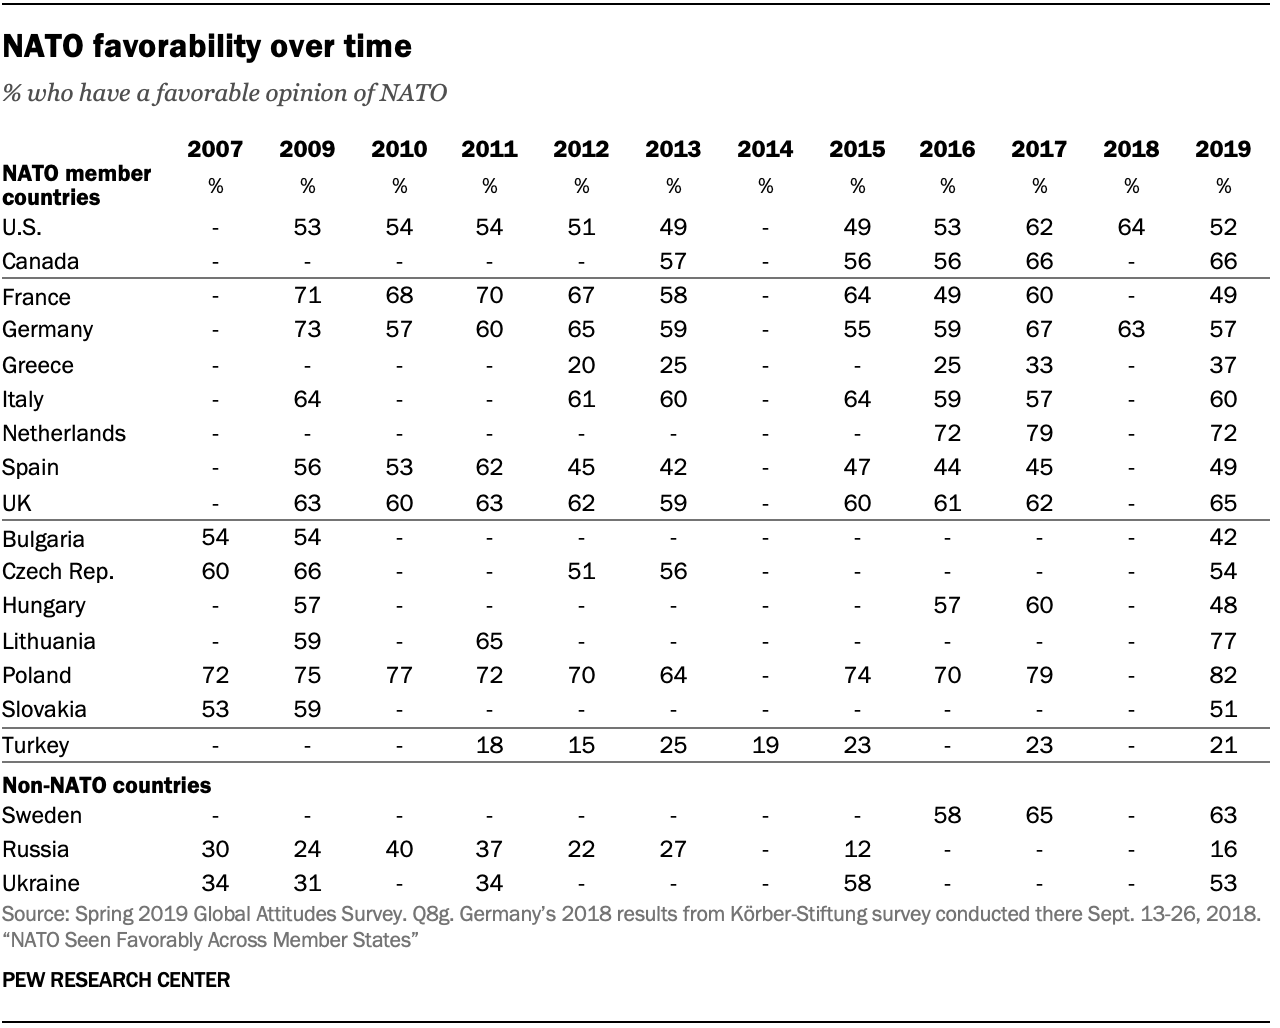 A table showing NATO favorability over time